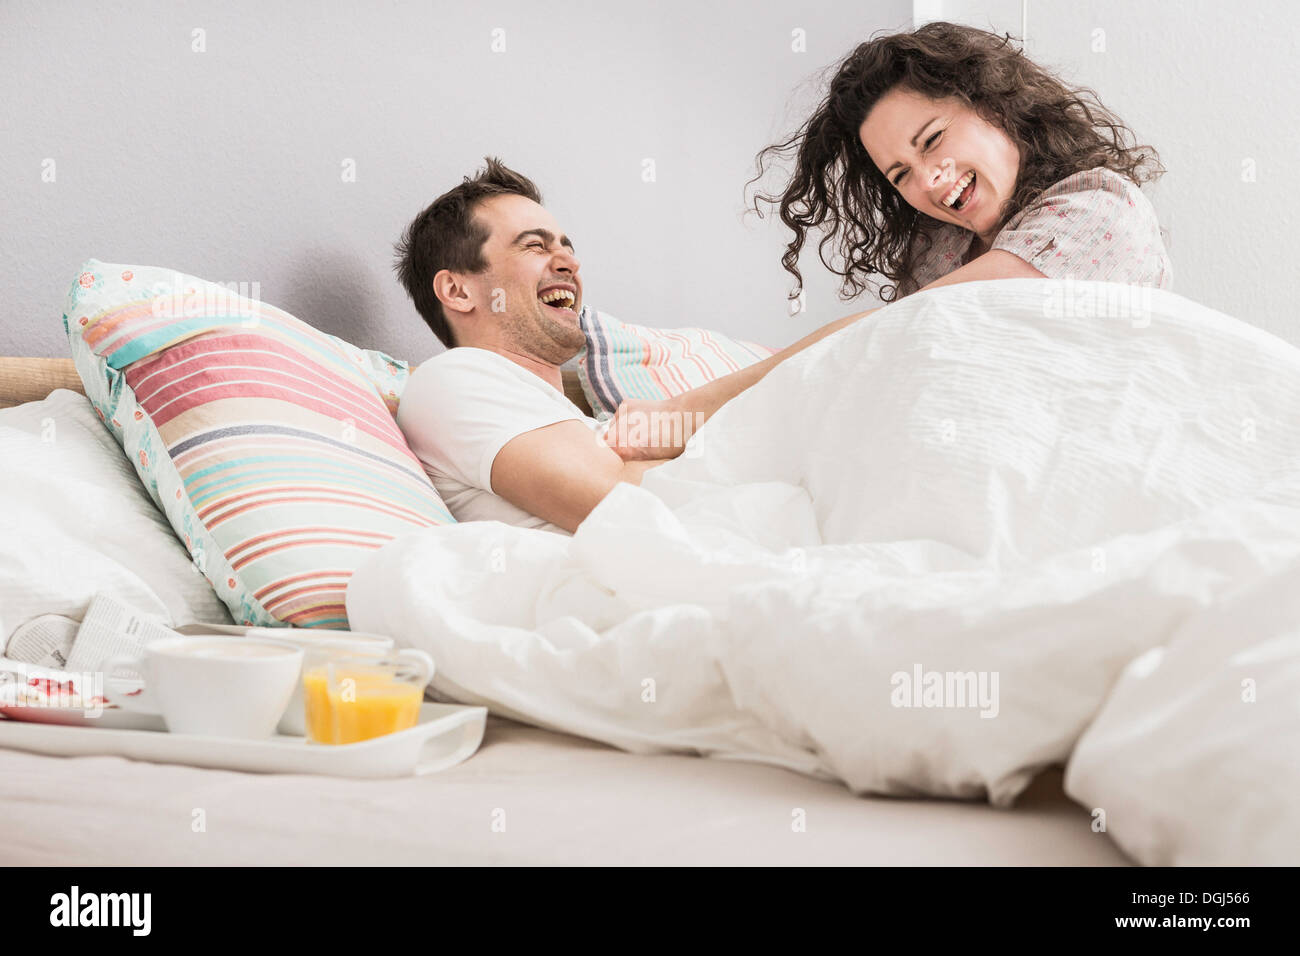 Mid adult couple lying in bed, breakfast on tray, pillow fight - Stock Image